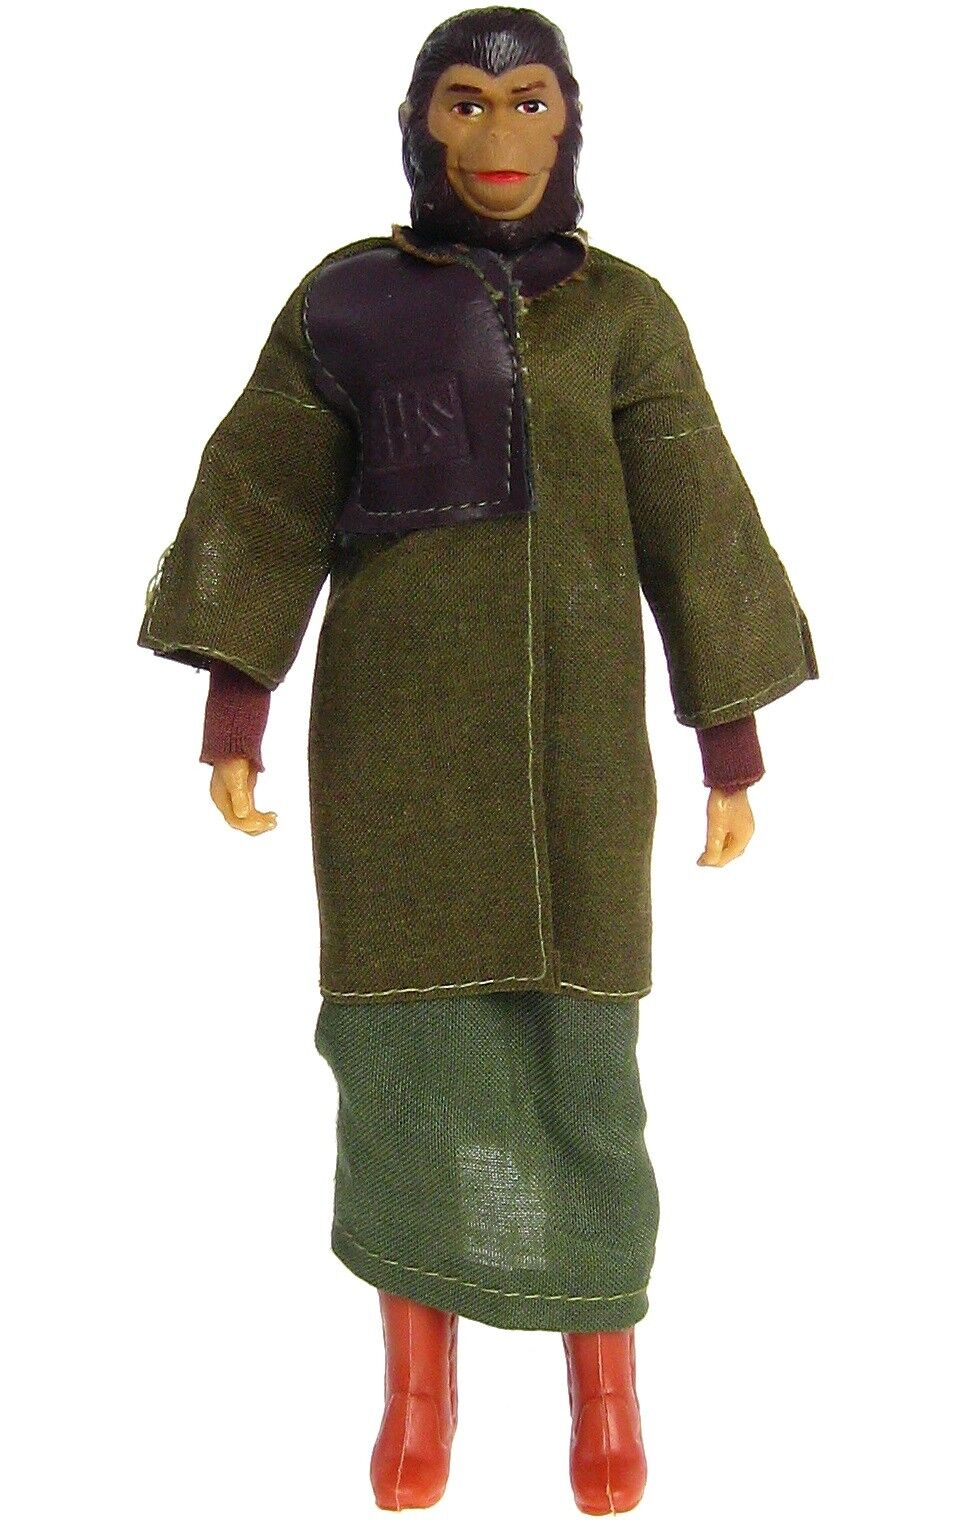 Vintage Mego Planet of the Apes POTA Brown Tunic Variant Zira 100% Complete Mint